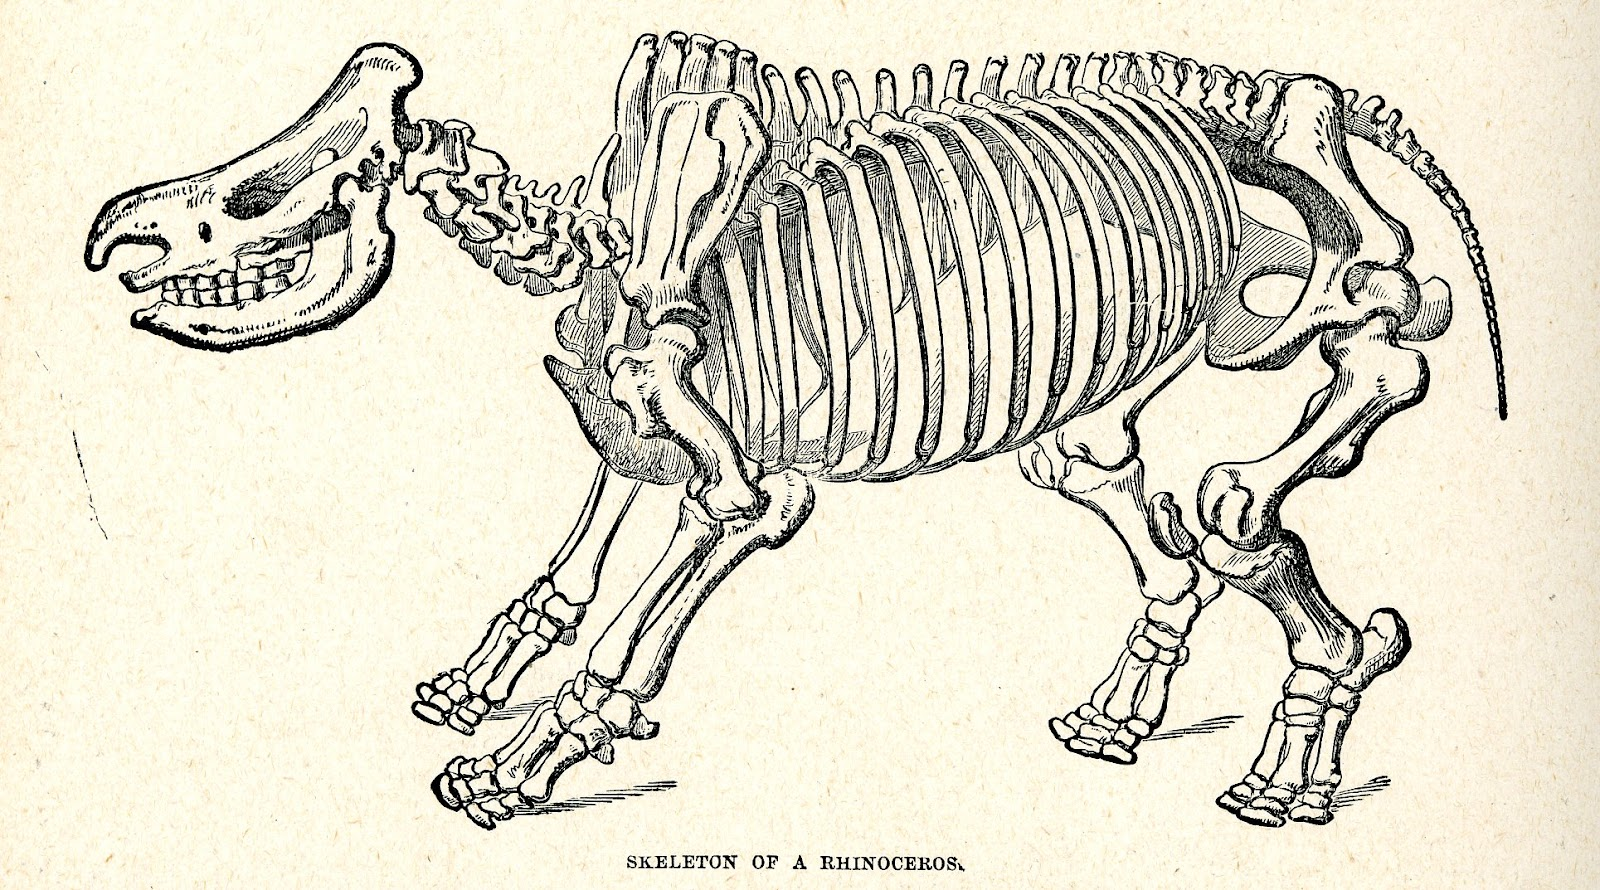 Vintage Technology Obsessions Rhinos Illustrated In The